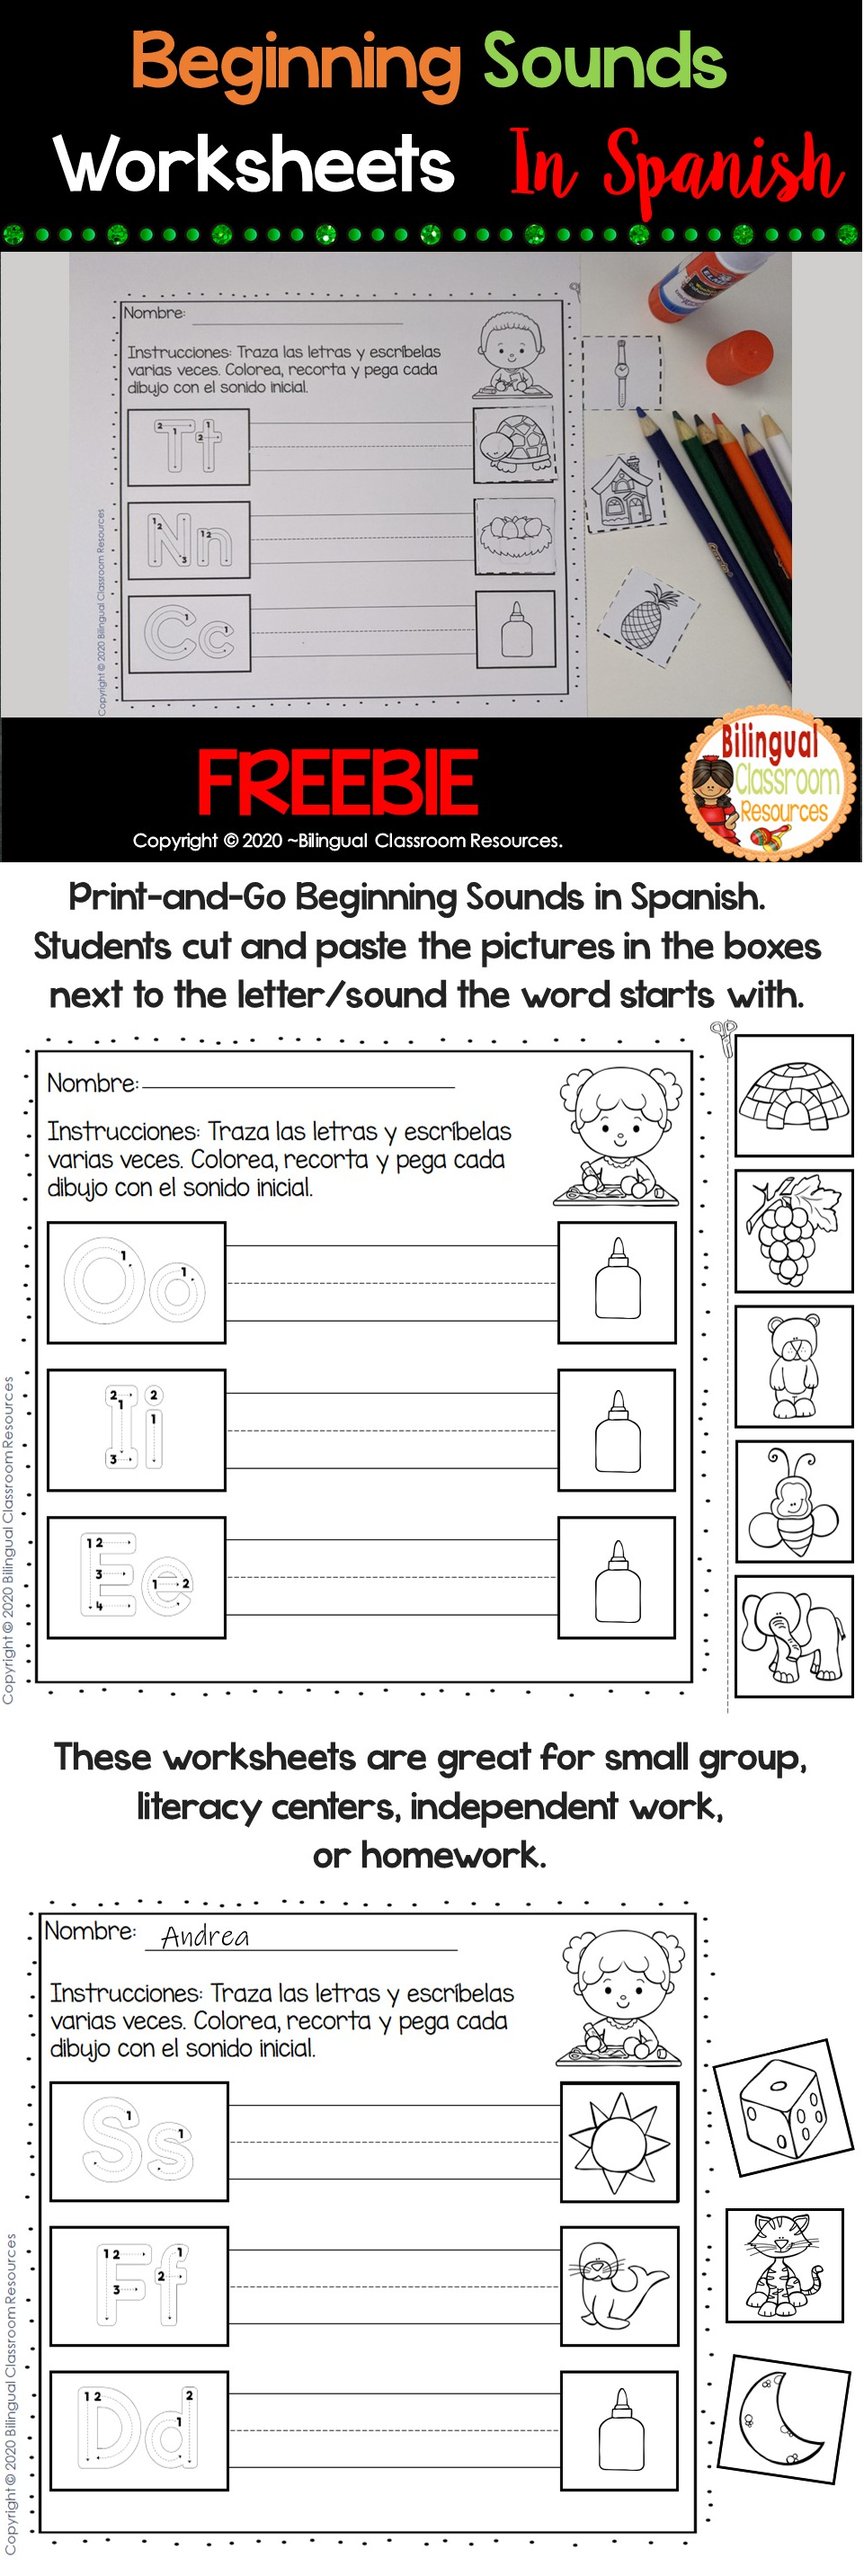 Beginning Sounds In Spanish Sonidos Iniciales Freebie Resource Classroom Beginning Sounds Worksheets Foreign Language Teaching [ 2865 x 961 Pixel ]